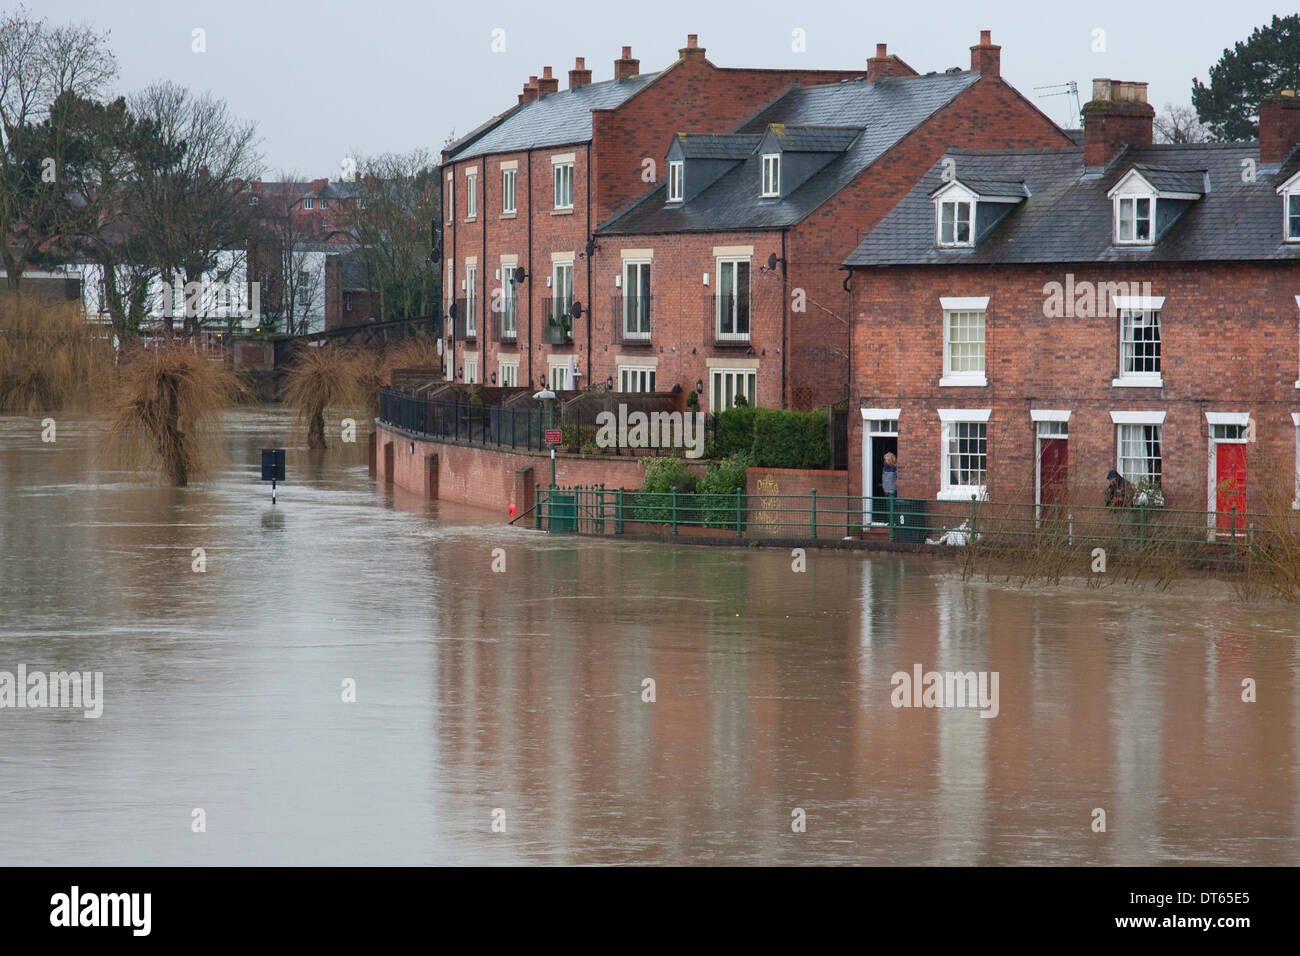 Shrewsbury, Shropshire, UK. 10th Feb, 2014. A resident looks across the flooded River Severn from the doorway of Stock Photo